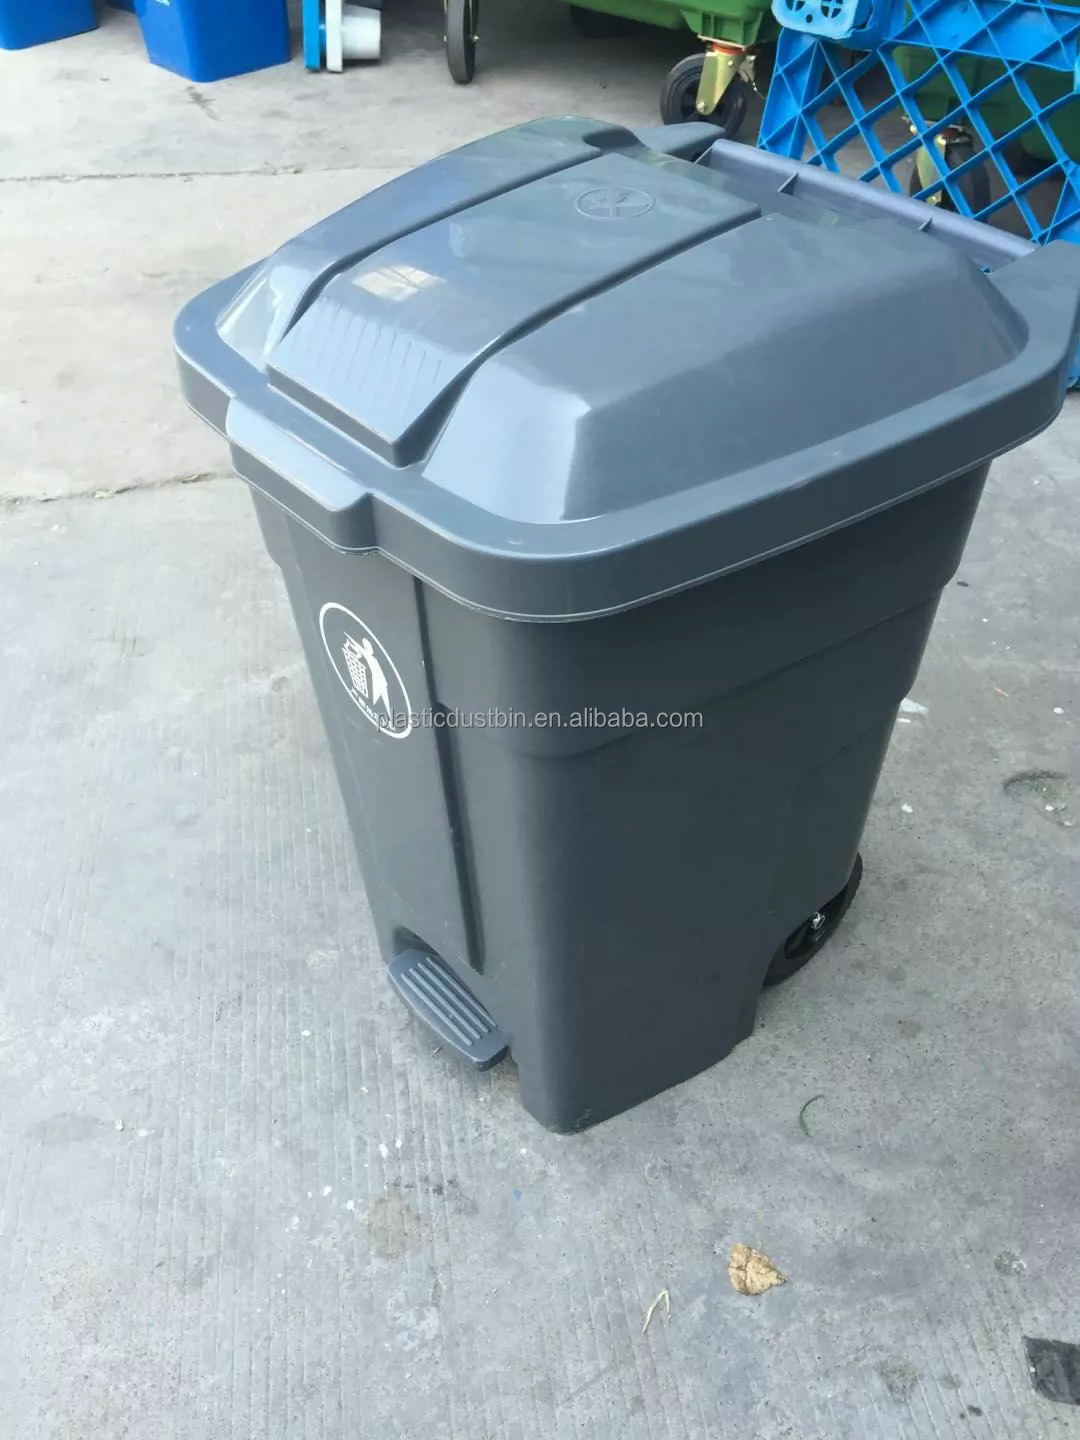 Lowes Recycling Bins Wholesale, Recycle Bin Suppliers - Alibaba